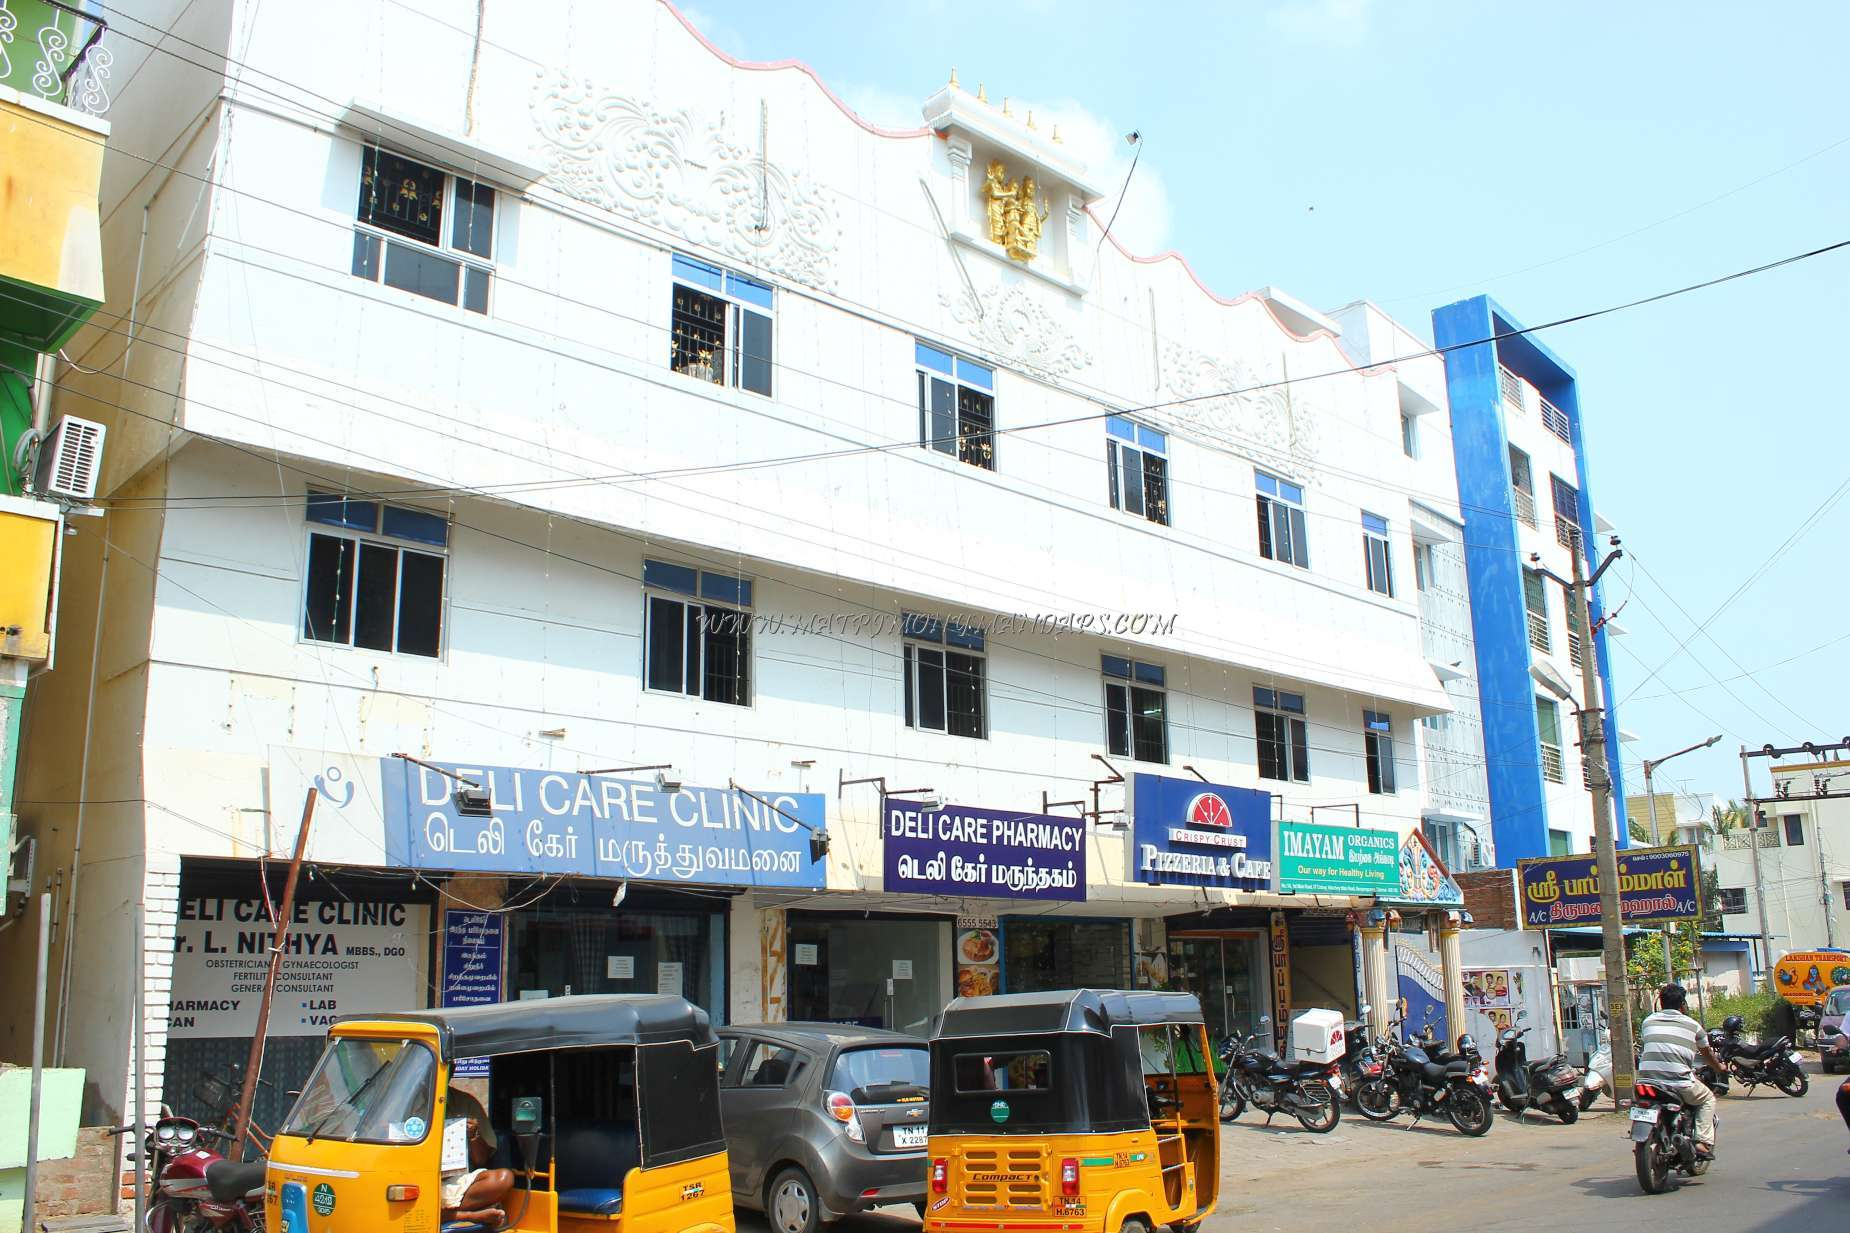 Find More Kalyana Mandapams in Medavakkam